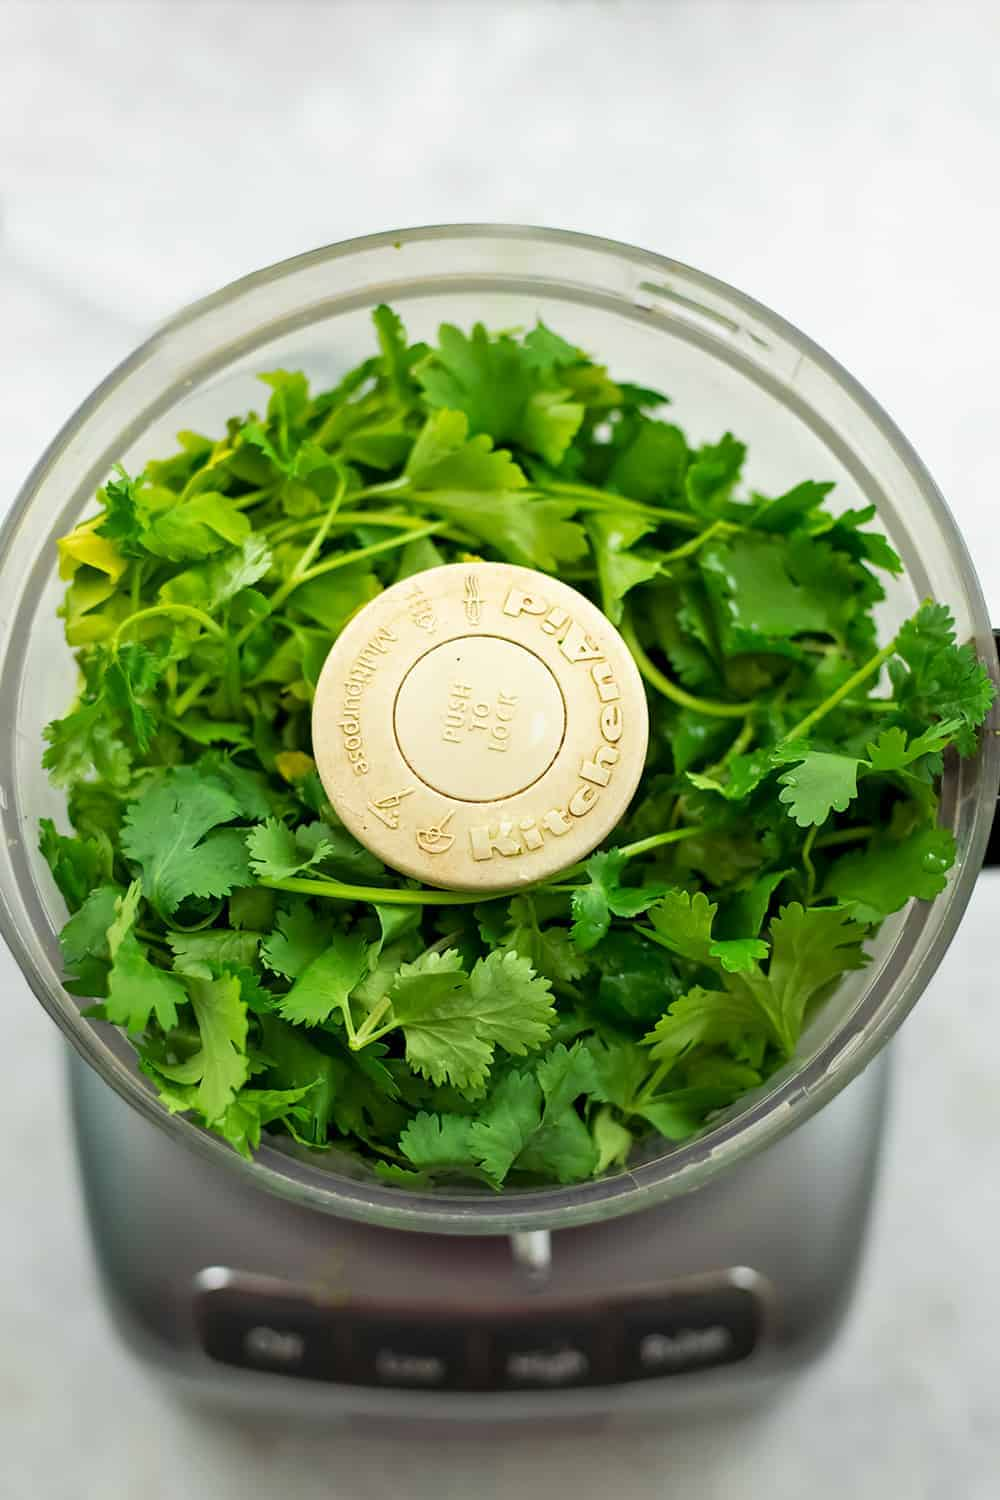 Food processor filled with cilantro and parsley.